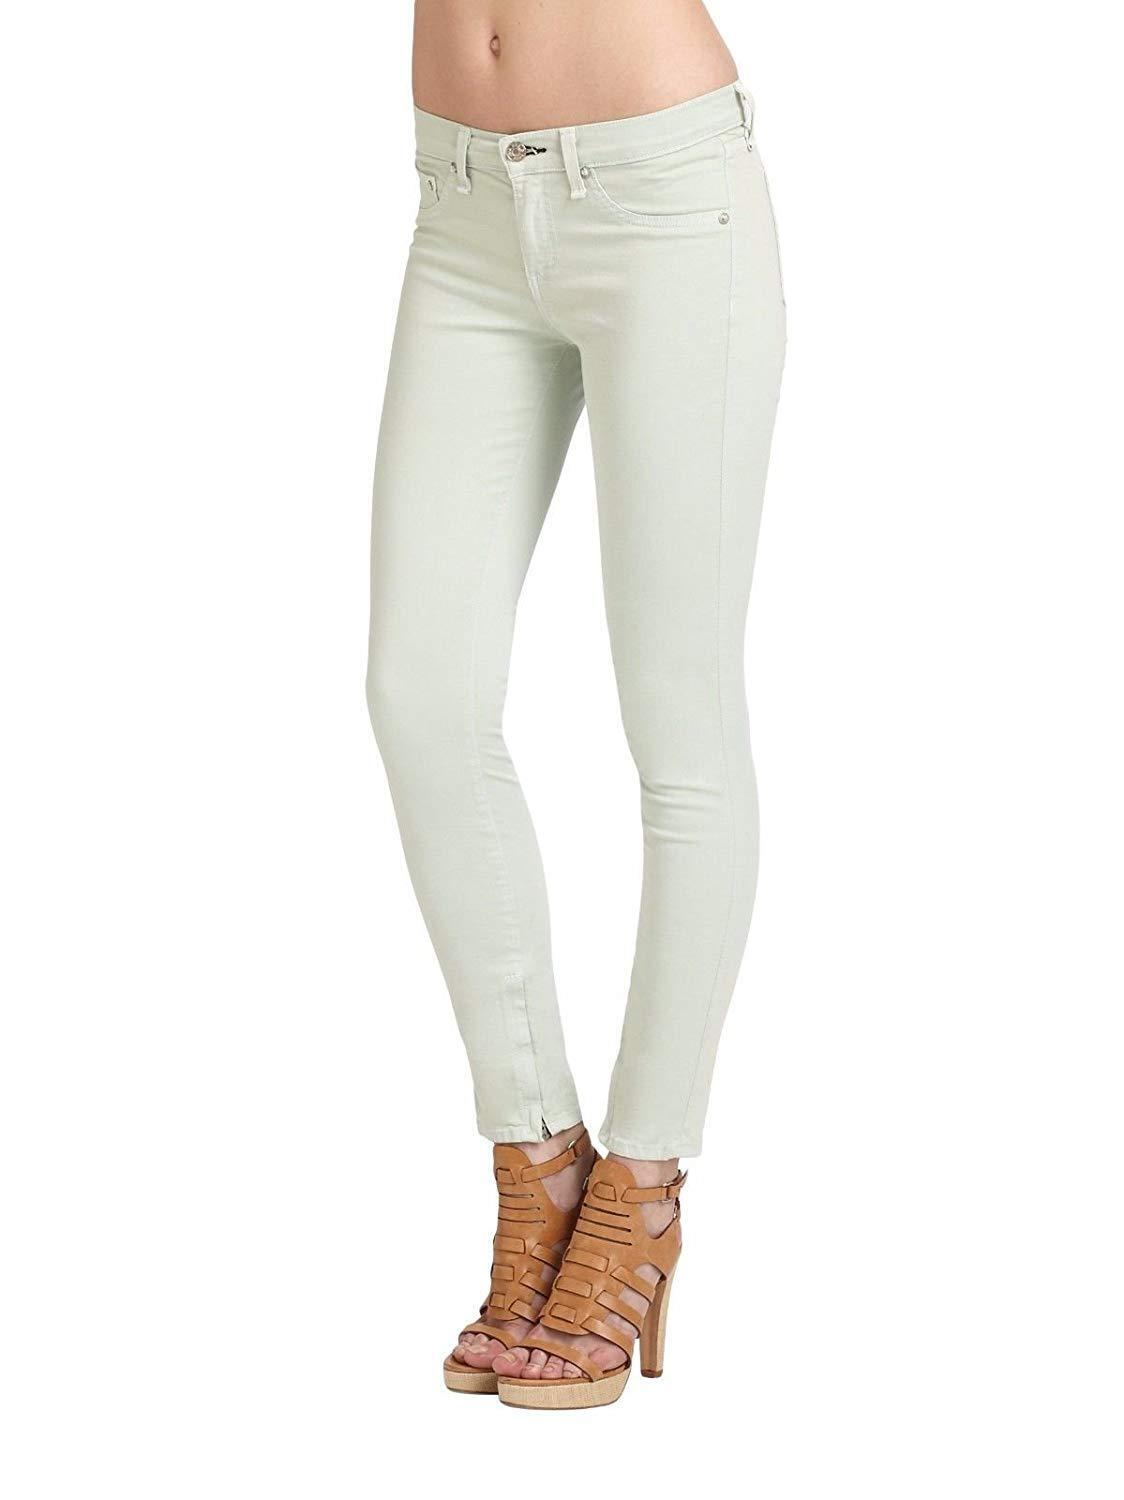 Rag & bone Distressed Mint Crop Jeans